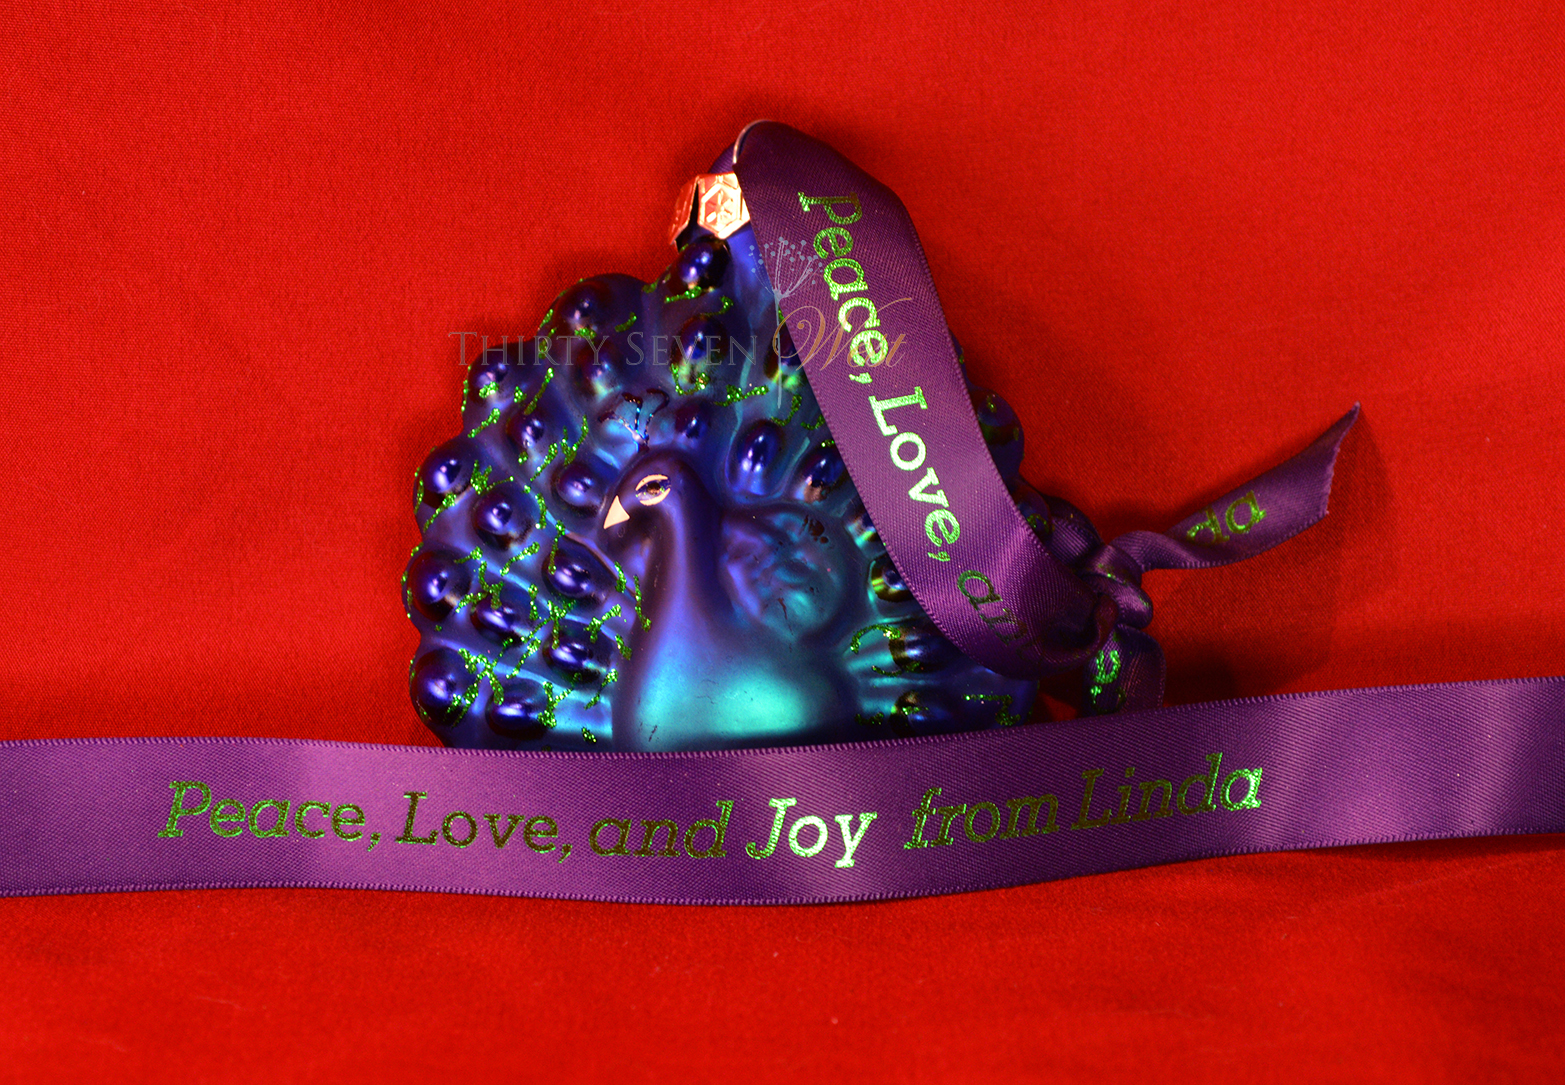 Branding ribbon to set you apart, Branding ribbon to wrap gift boxes Christmas gifts for companies, Christmas ornament gift with personalized hanger, Christmas ornament with custom logo ribbon, Christmas ornament with logo ribbon, Christmas ornament with personalized ribbon as hanger, Christmas Ribbon, Custom Logo ribbon to wrap gift box Custom logo ribbon to wrap gift boxes Custom logo ribbon to wrap gift box for the holidays Custom printed ribbon, Custom ribbon, Customized Ribbon, Festive colors, First class branding, Holiday colors Logo ribbon to wrap gift box Logo ribbon to wrap gift box for holidays Luxury branding with double face satin ribbon, Metallic green ink, Ornament hanger, Ornament with Christmas ribbon with custom logo, Peacock ornament, Personalized Christmas Ribbon, Personalized printed ribbon, Personalized Ribbon with message, Personalized Ribbon with messages, Personalized Ribbon with sayings, Personalized Ribbons, Personalized ribbon to wrap gift boxes personalized satin ribbon, Personalized printed satin ribbon Printed ribbon, Purple ribbon, Purple satin ribbon with Metallic Green ink, Red Ribbon, Ribbon in holiday colors